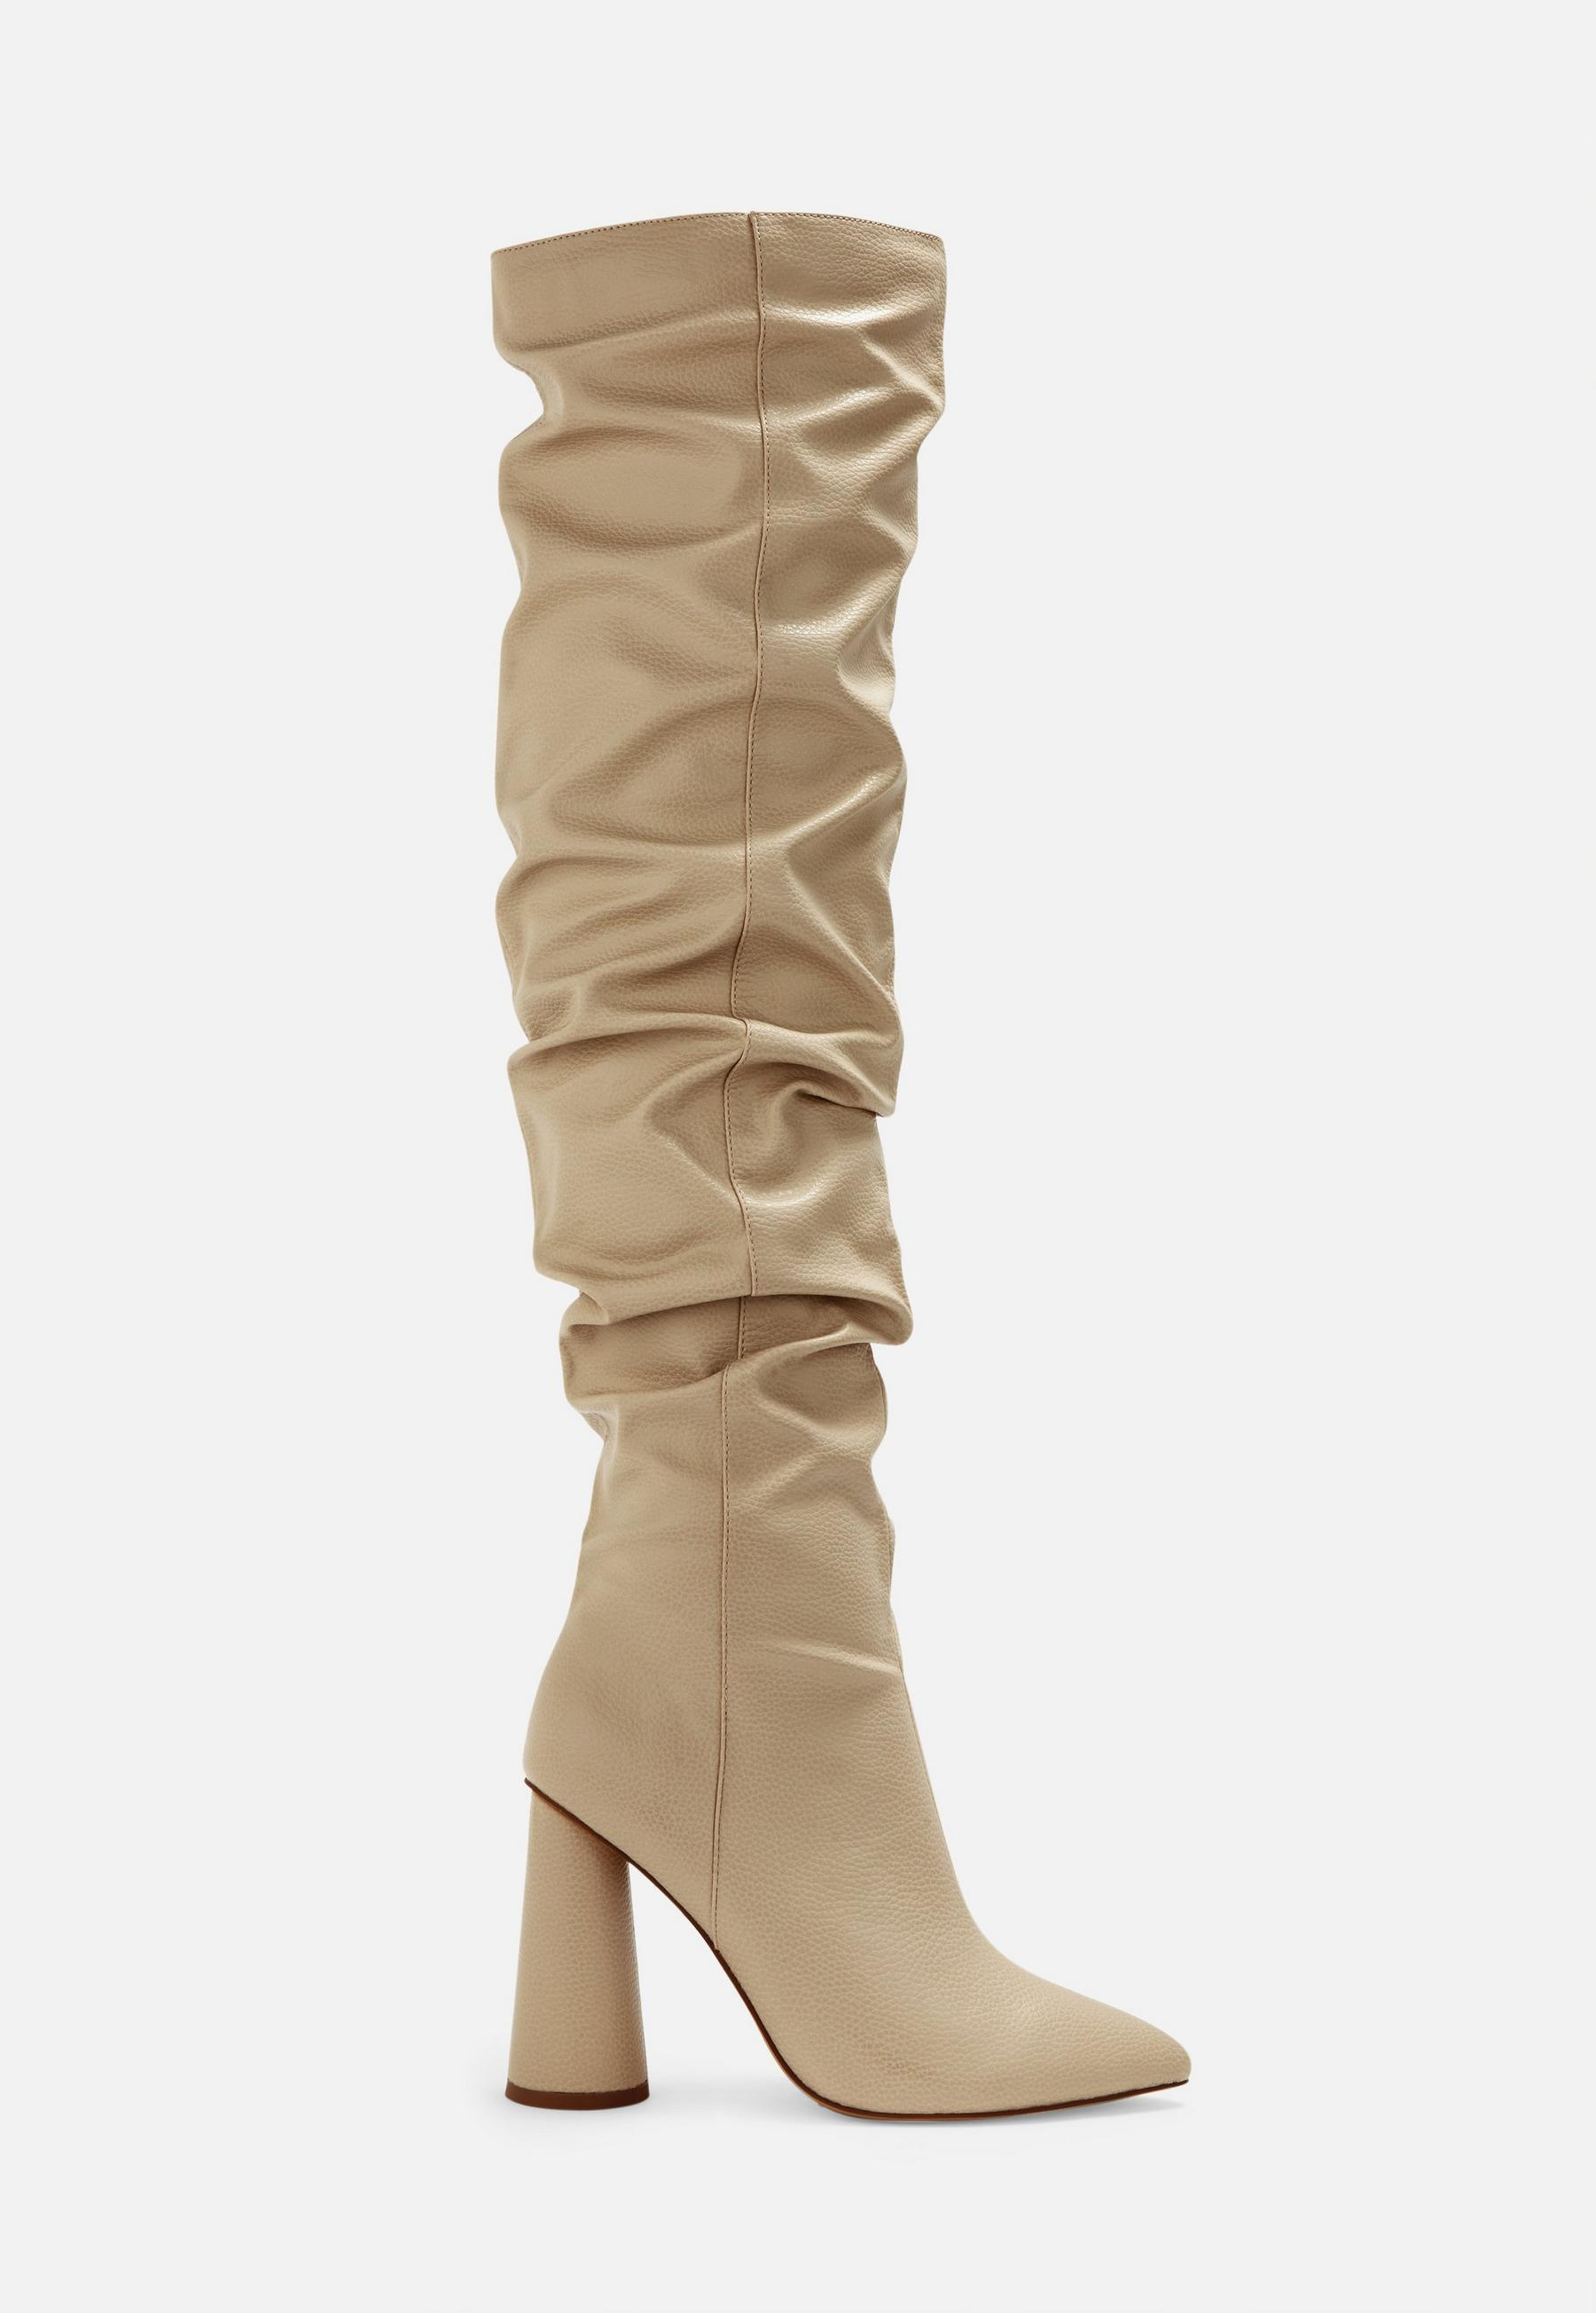 J. Adams Gorgeous Lace up Over The Knee Boot - Vegan Suede